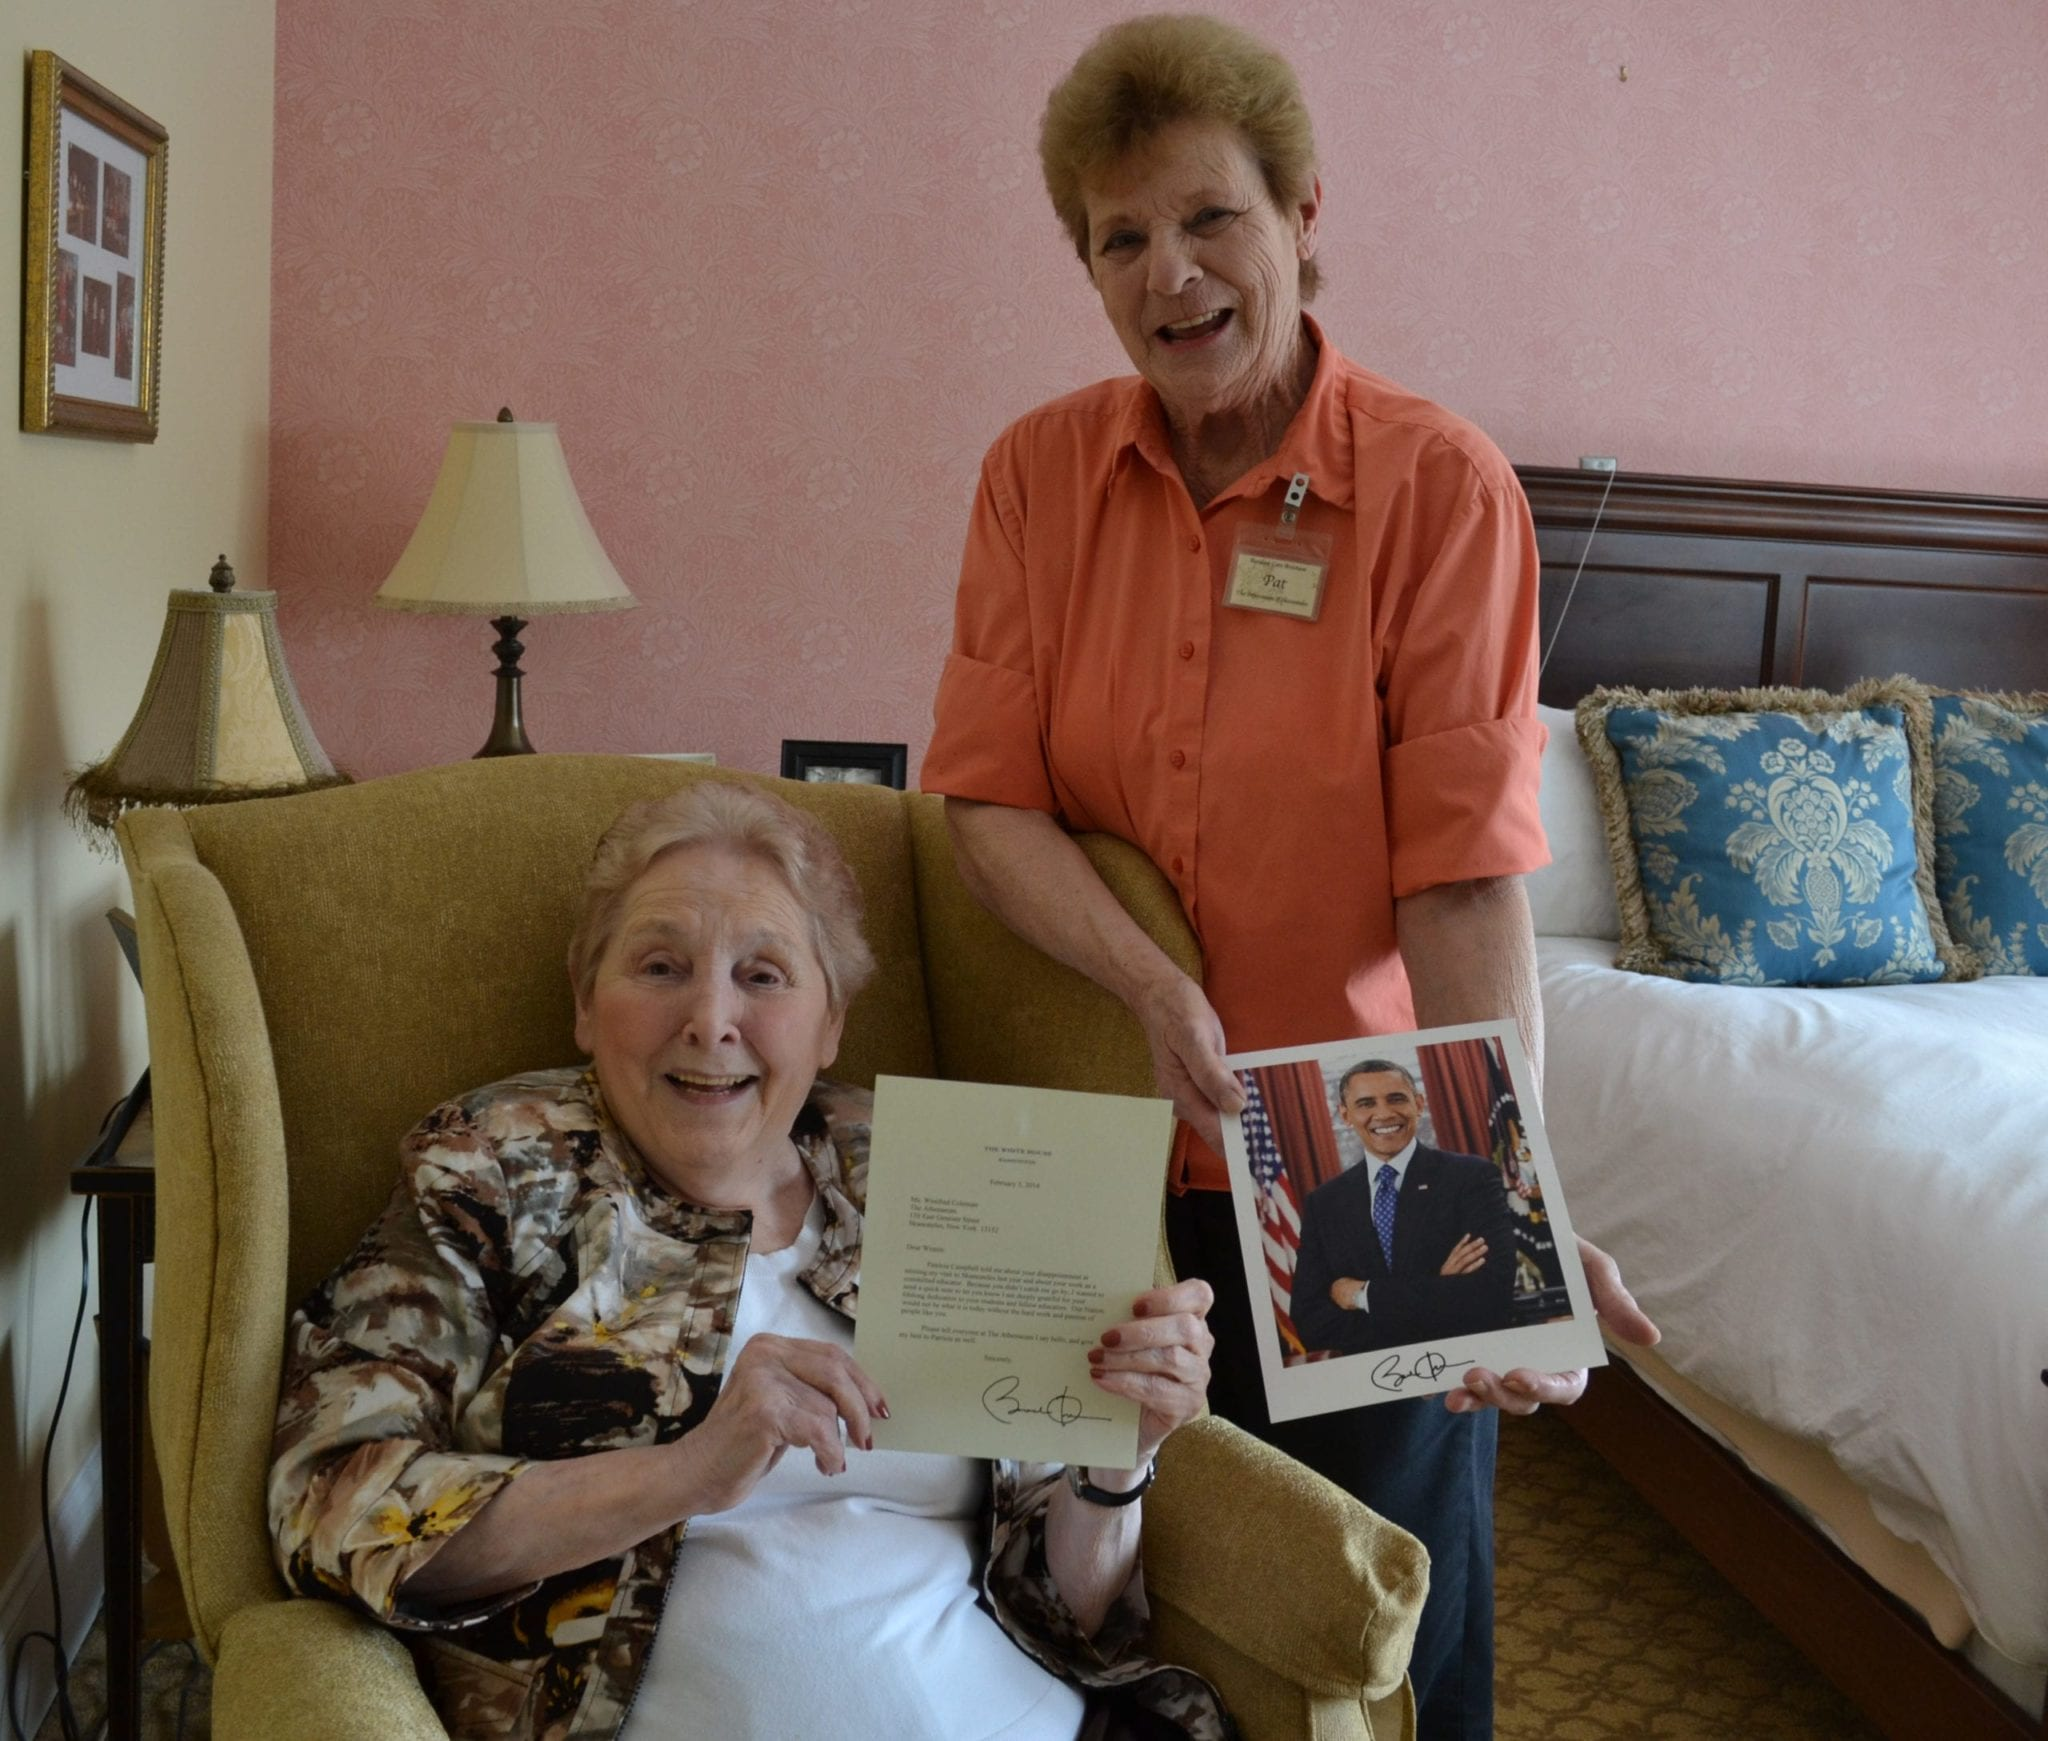 After missing his visit, Skaneateles woman receives signed letter from President Obama